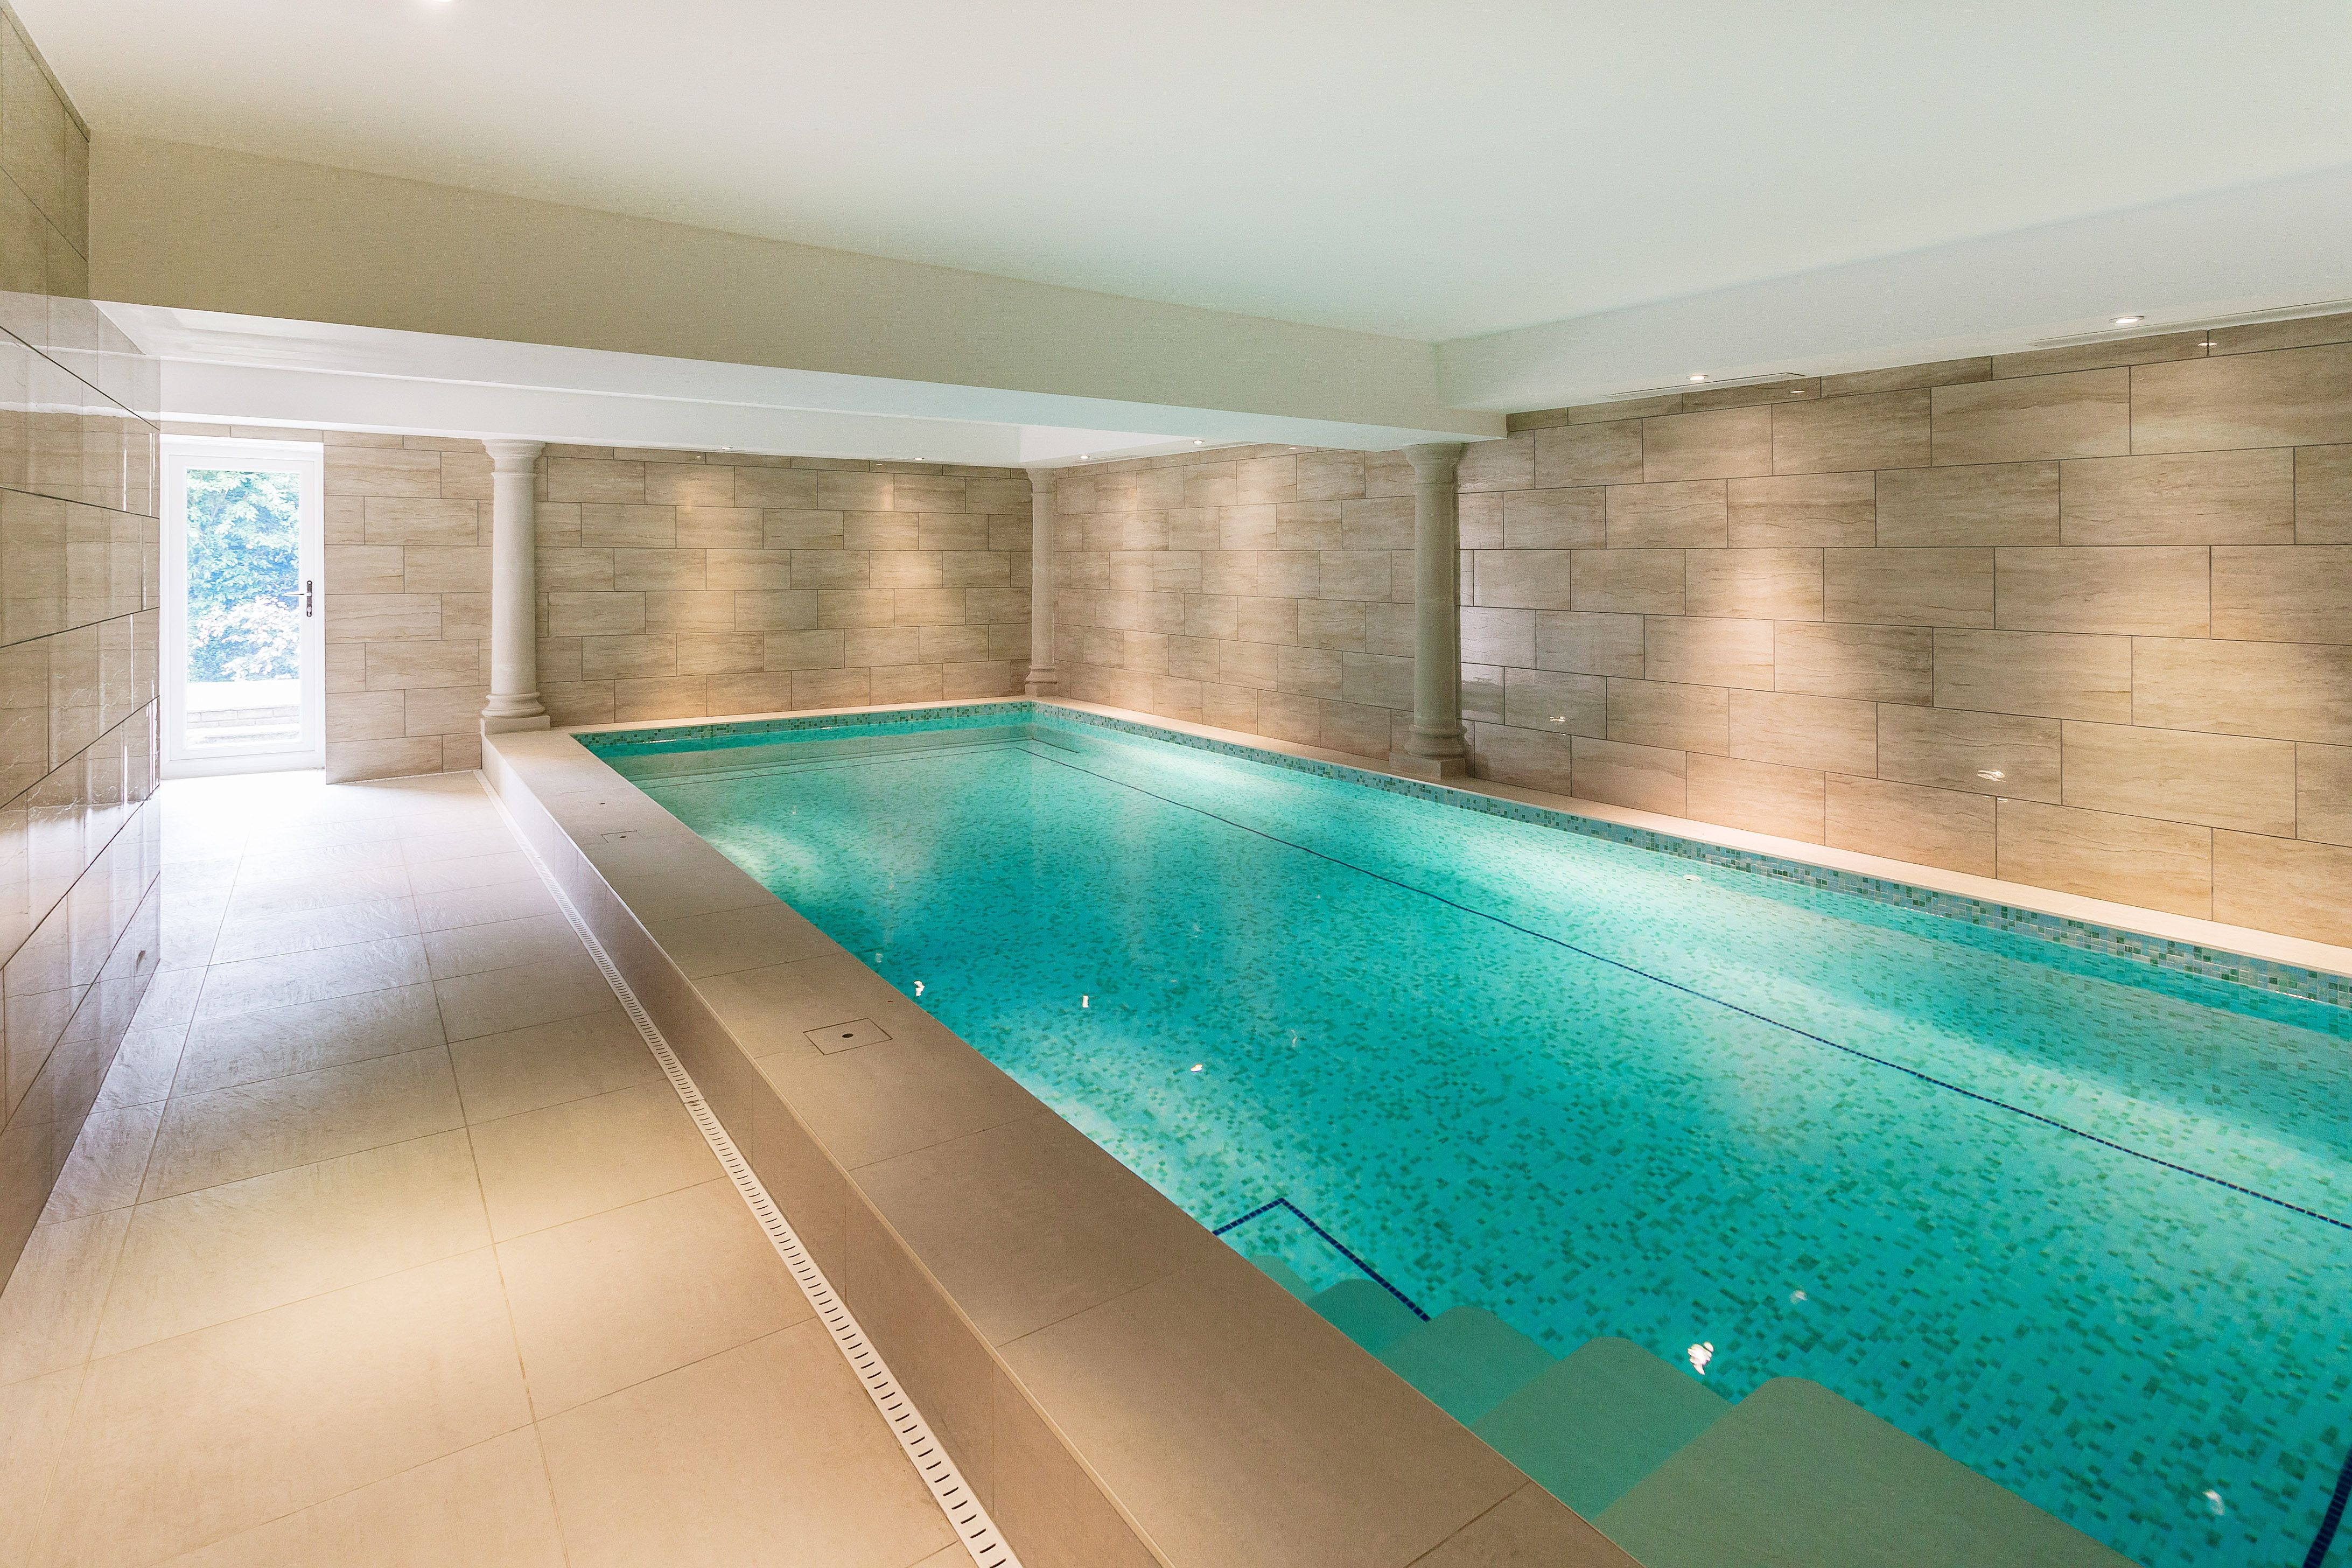 Basement Swimming Pool Design Work Up An Appetite Before Dinner With A Few Lengths In The